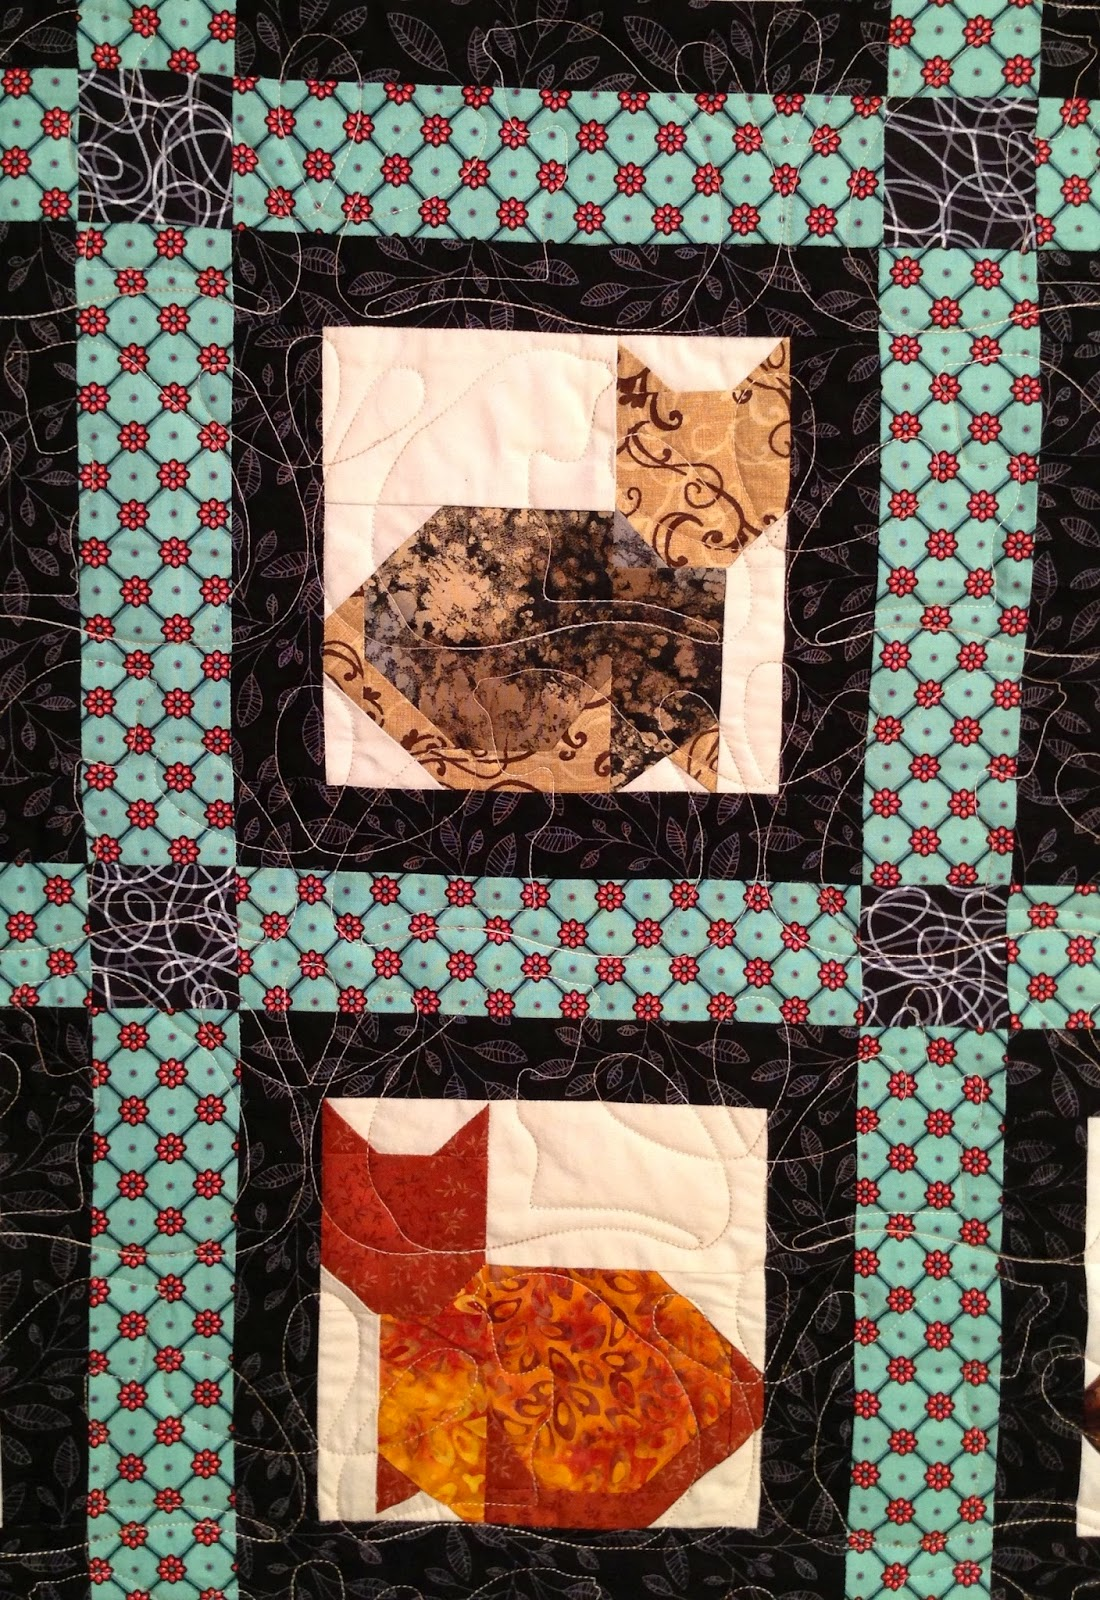 Pearl Combs's Many Cats Quilt